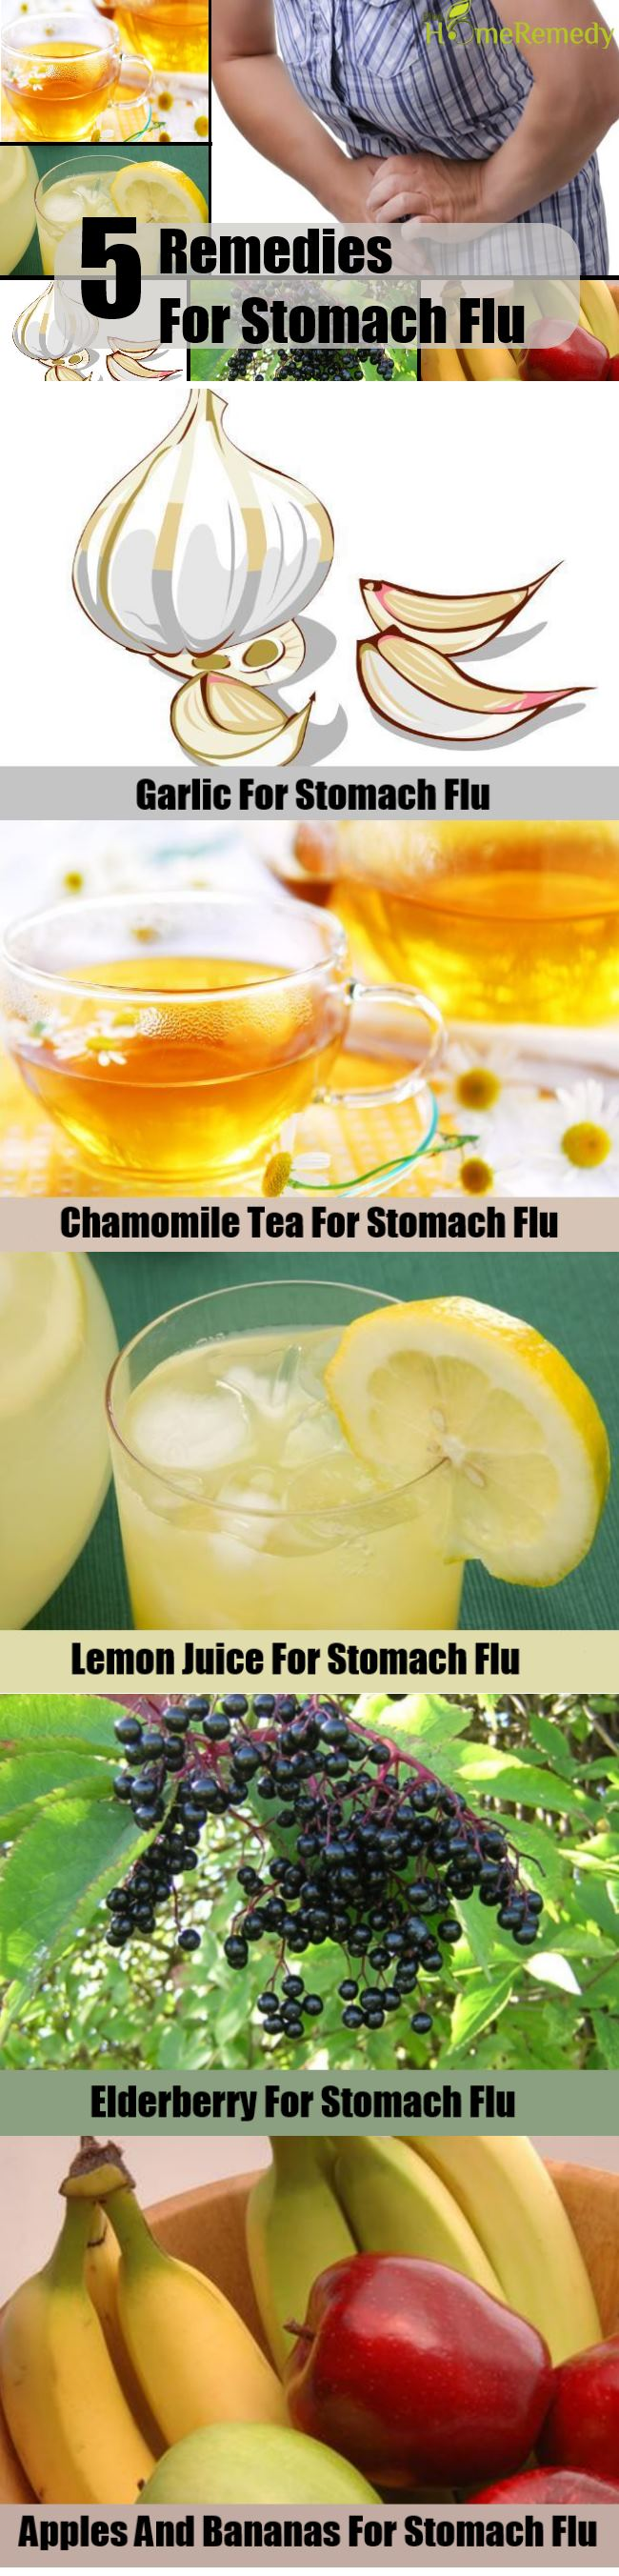 5 Remedies For Stomach Flu